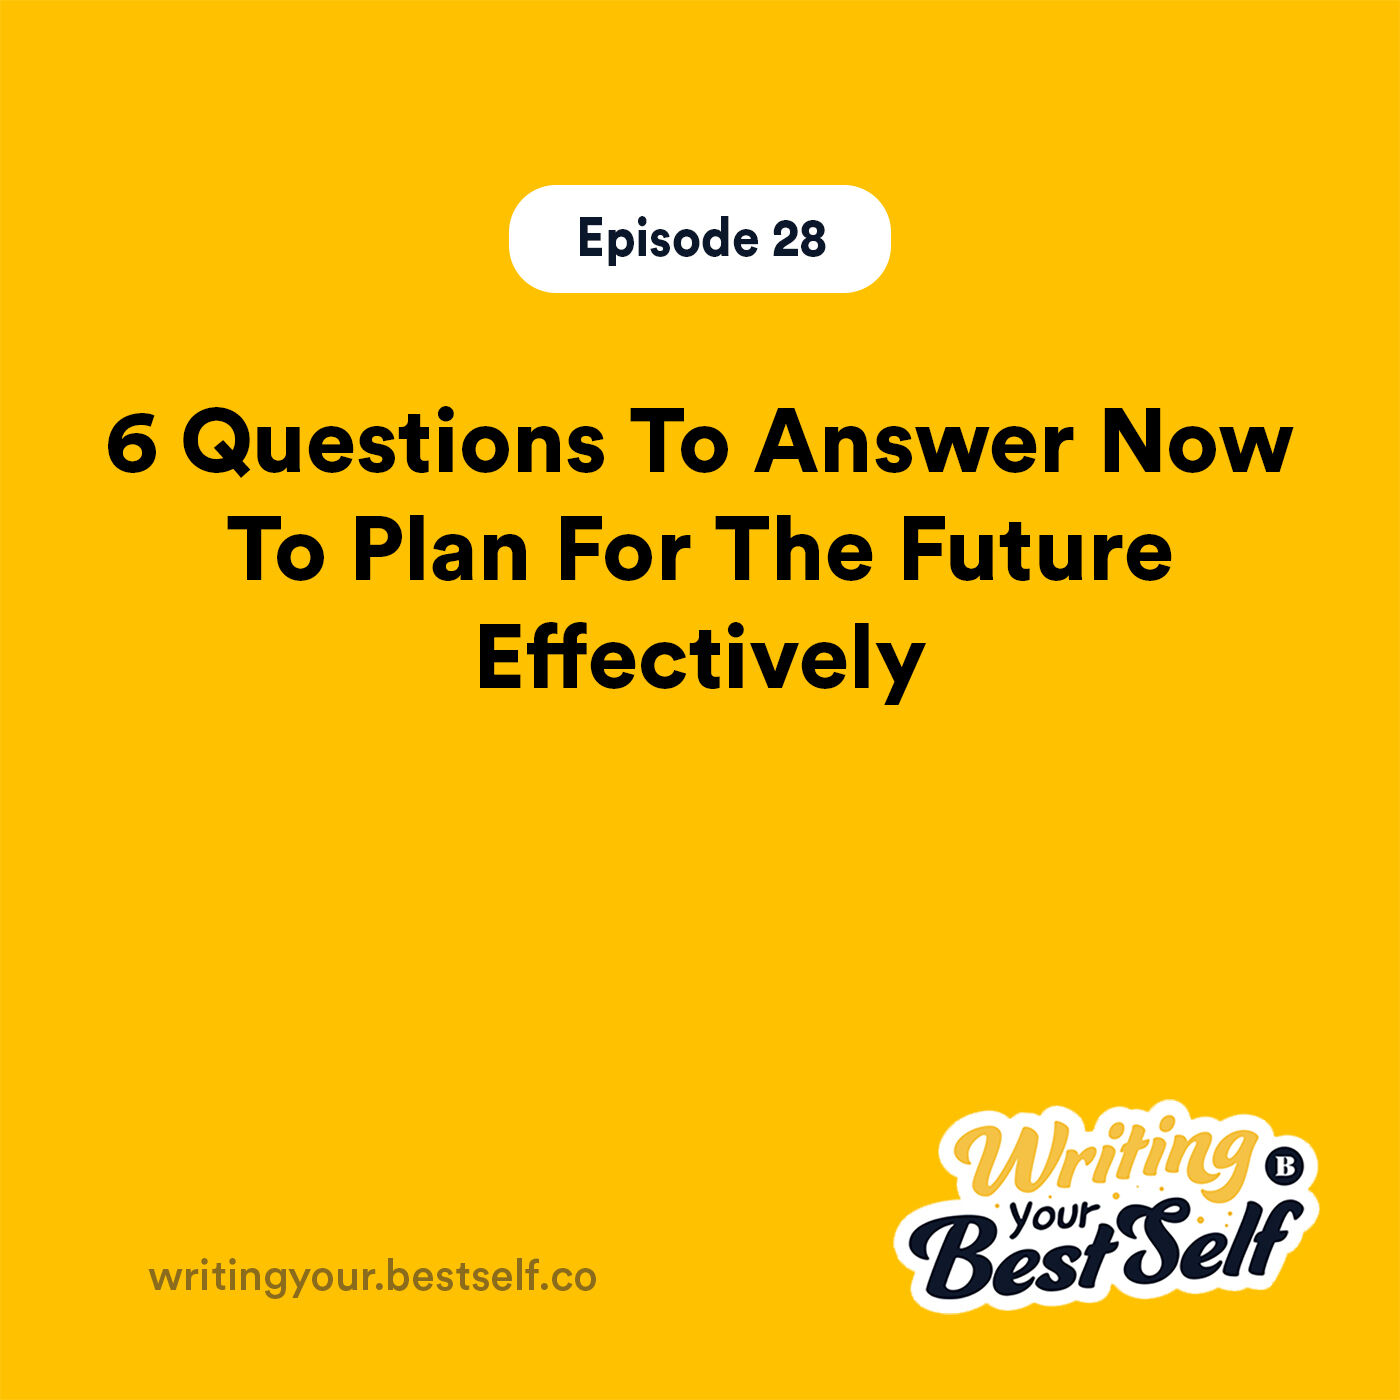 6 Questions To Answer Now To Plan For The Future Effectively